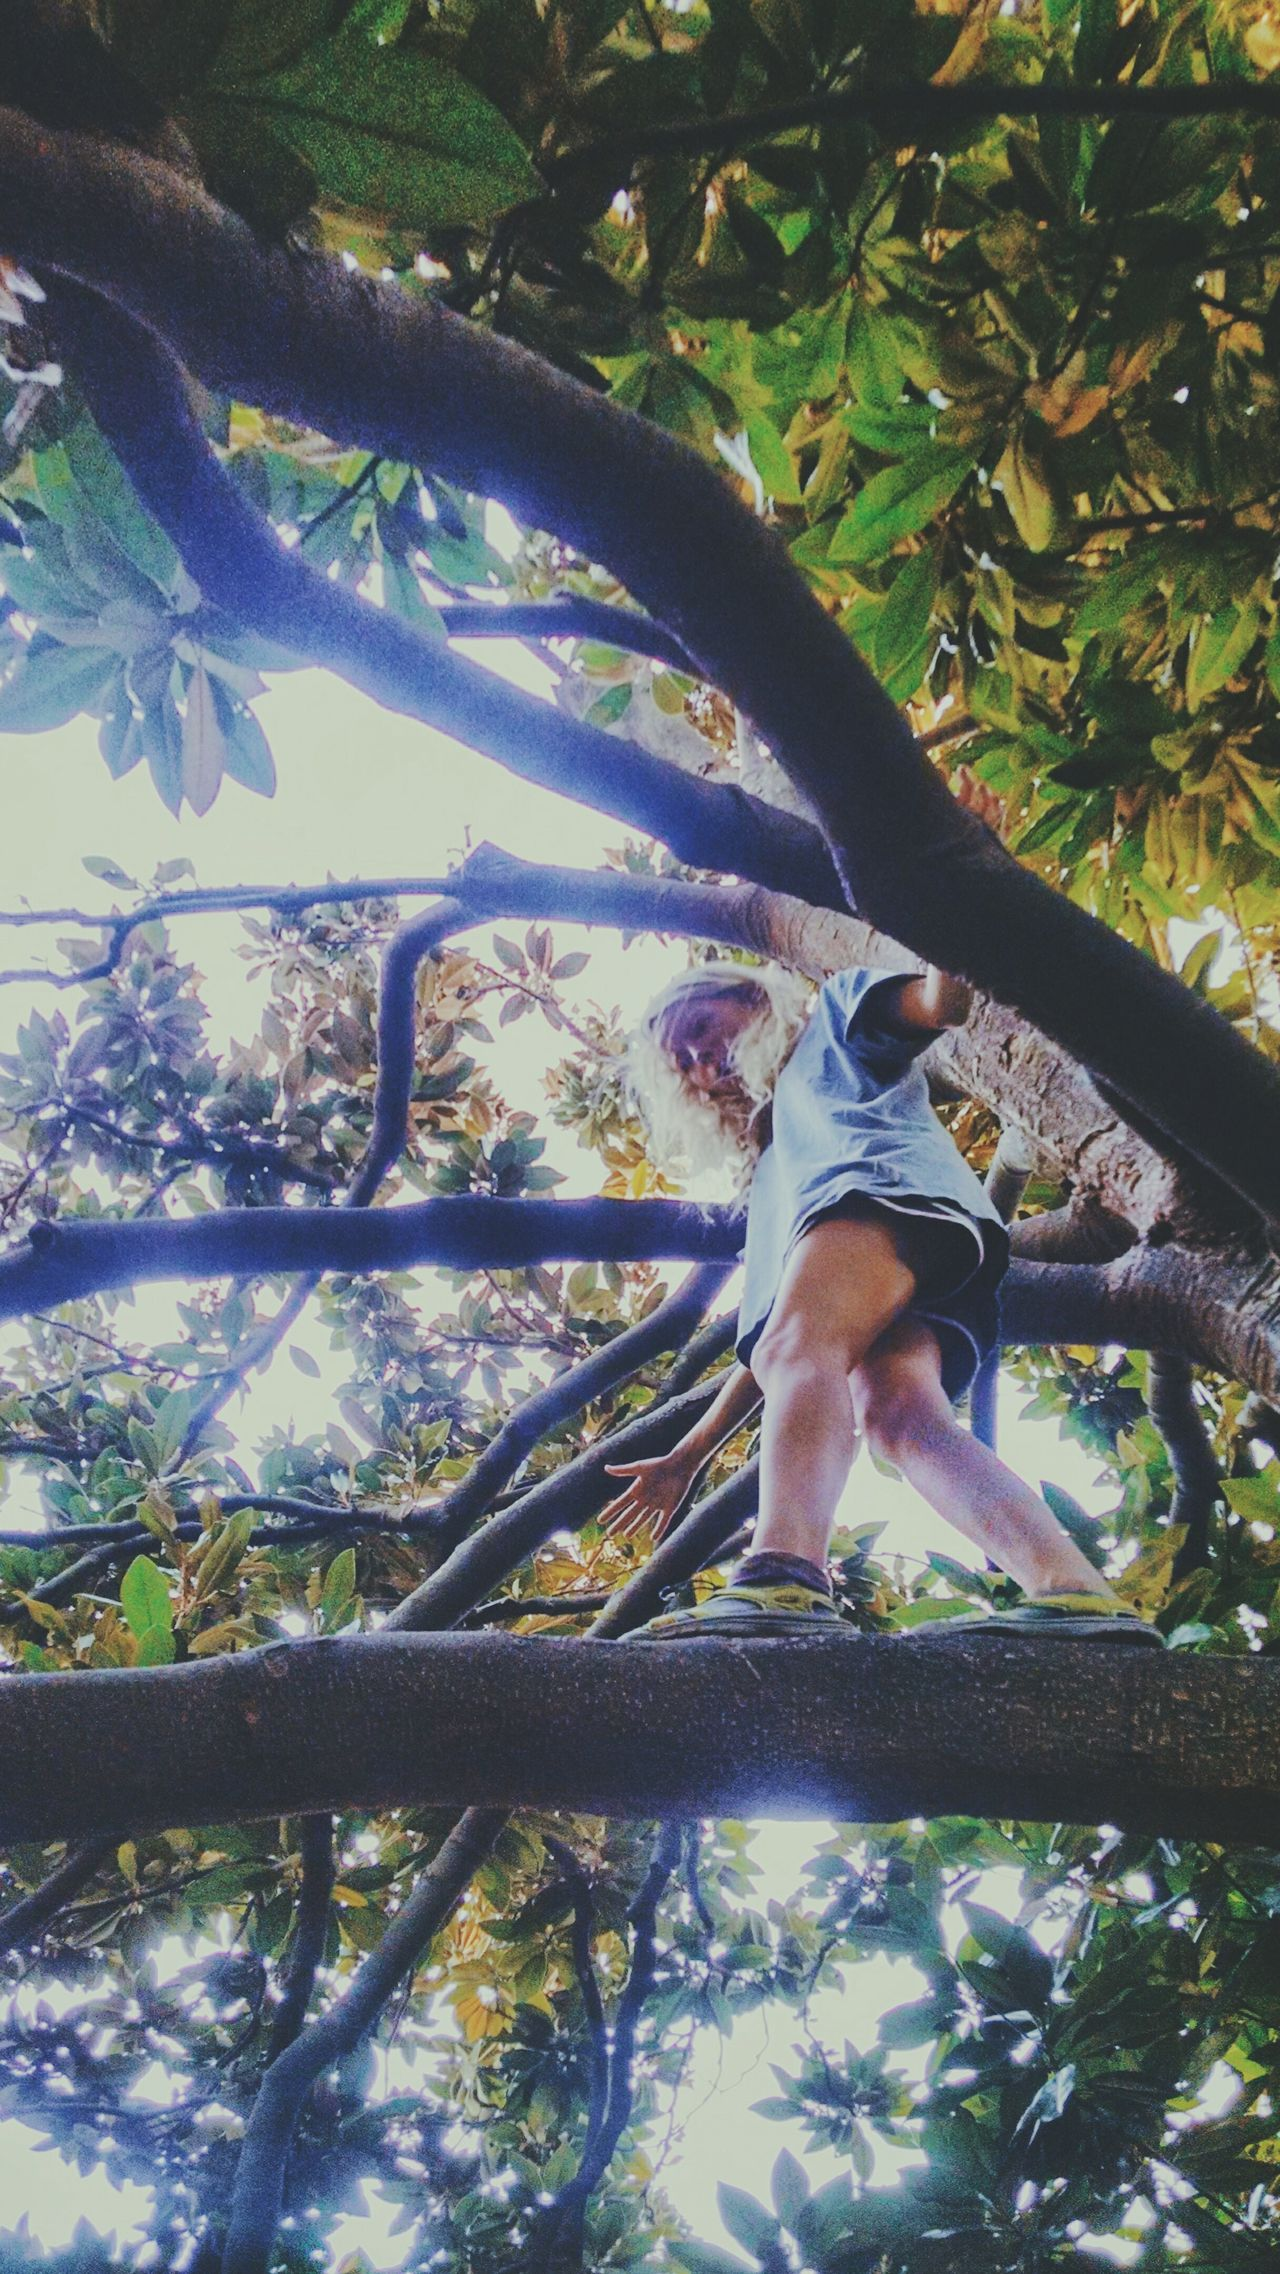 Day Green Color Branch Tree Trunk Outdoors Climbing Trees Girl Blonde In A Tree Monkey Climbing Magnolia Tree Southern Nature Explore ExploreEverything Explore Nature